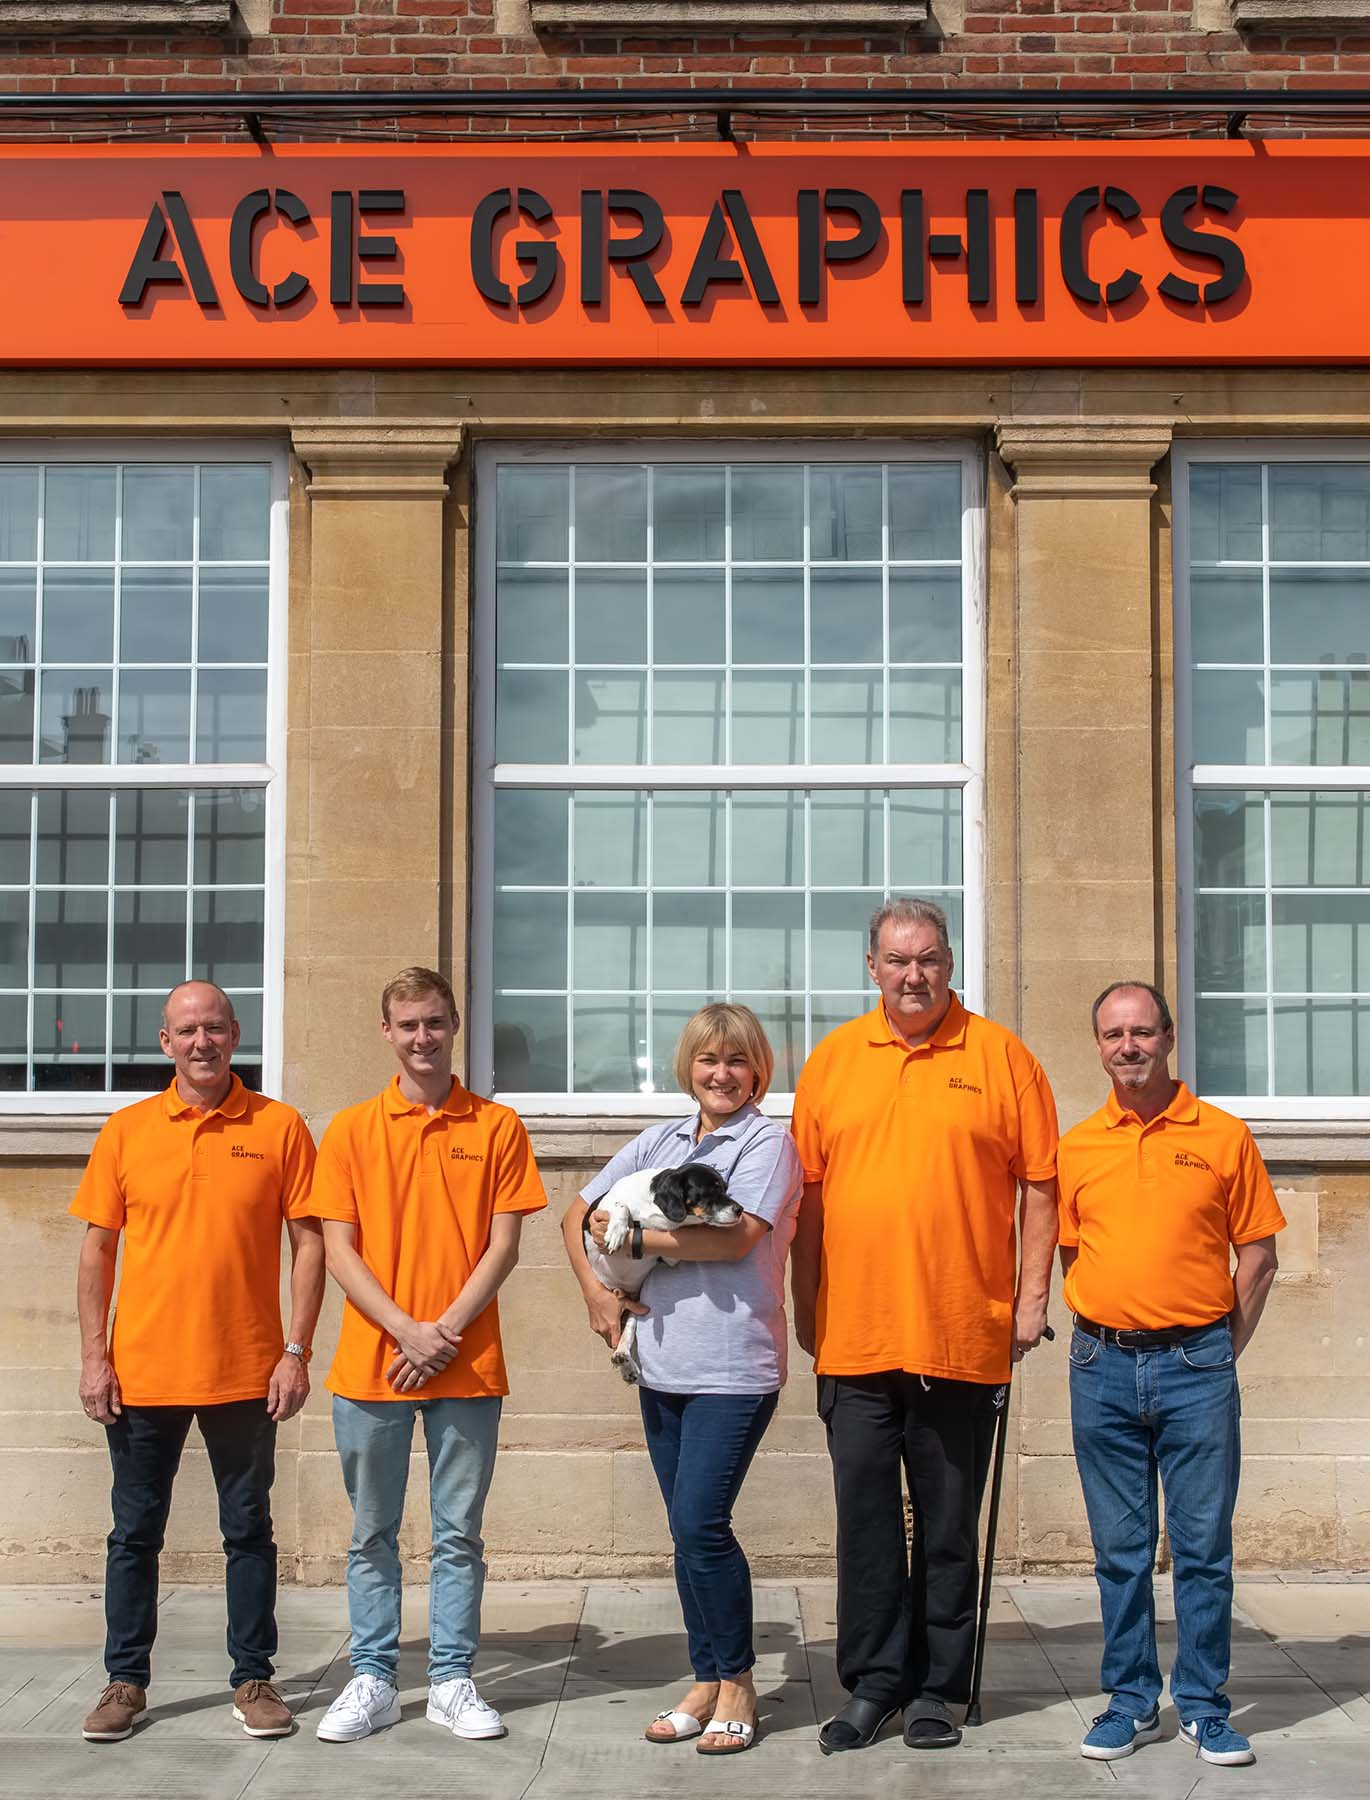 Ace Graphics